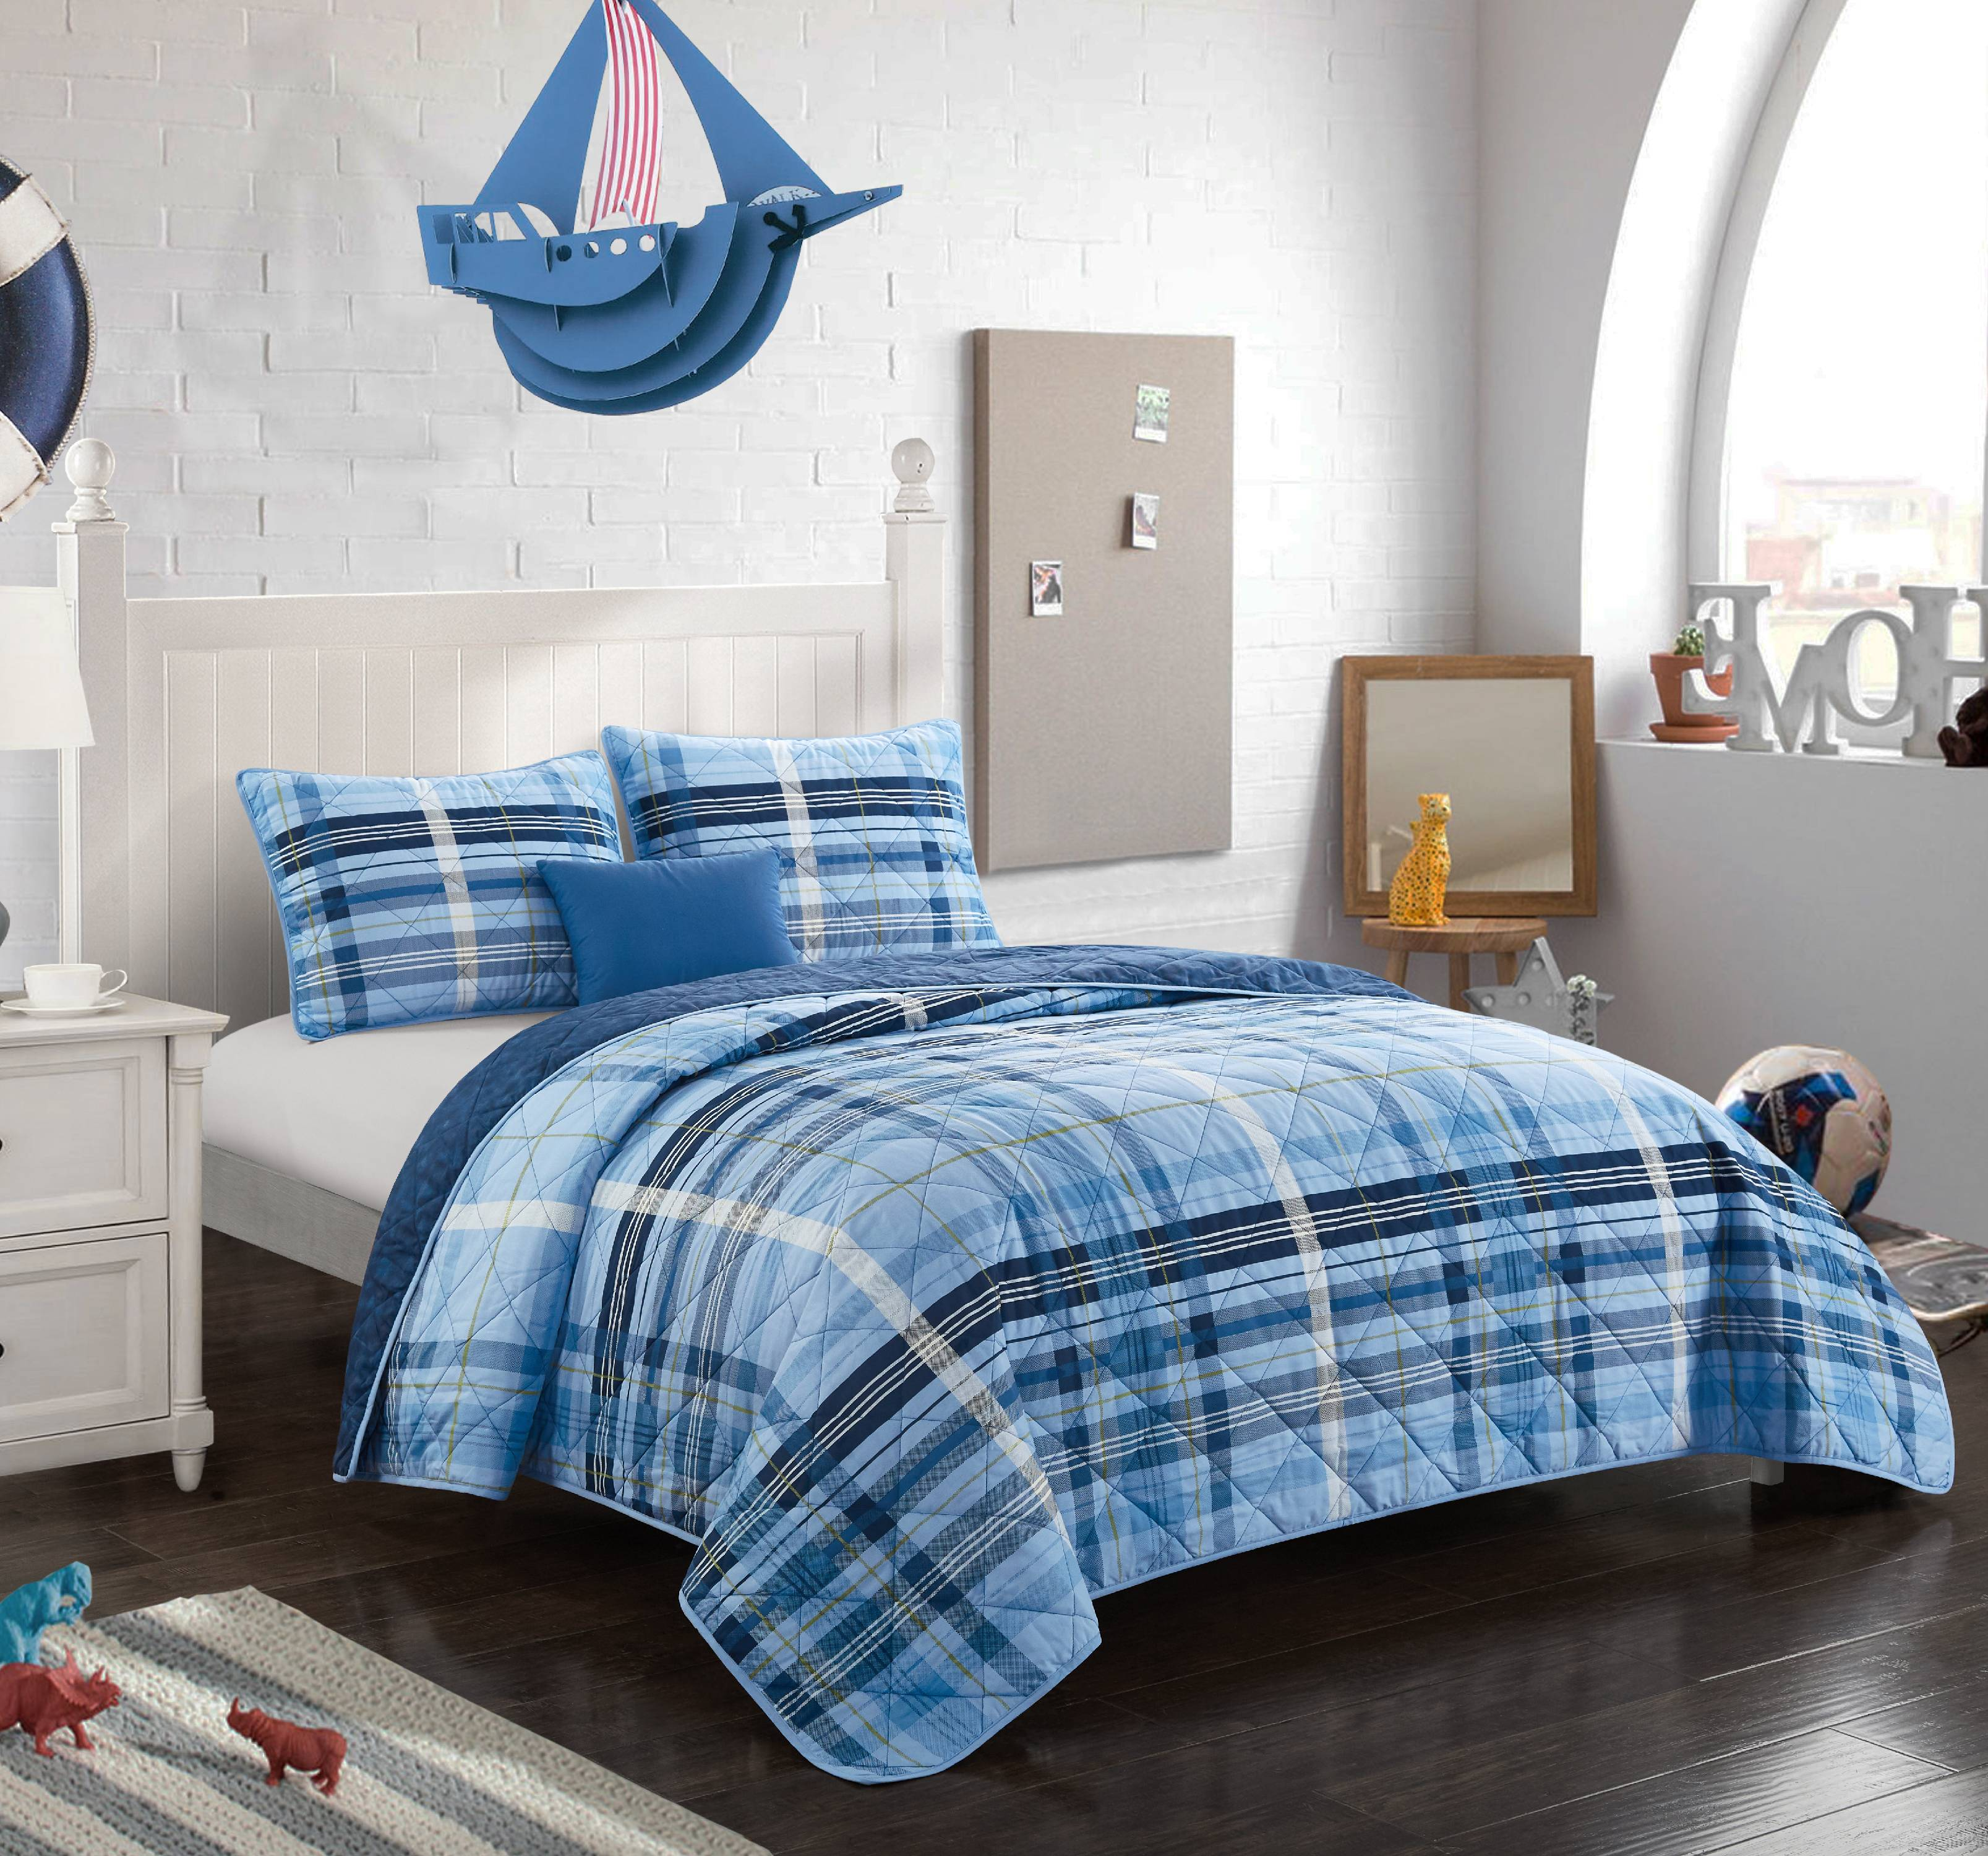 Better Homes & Gardens Navy Blues Plaid Quilt Set